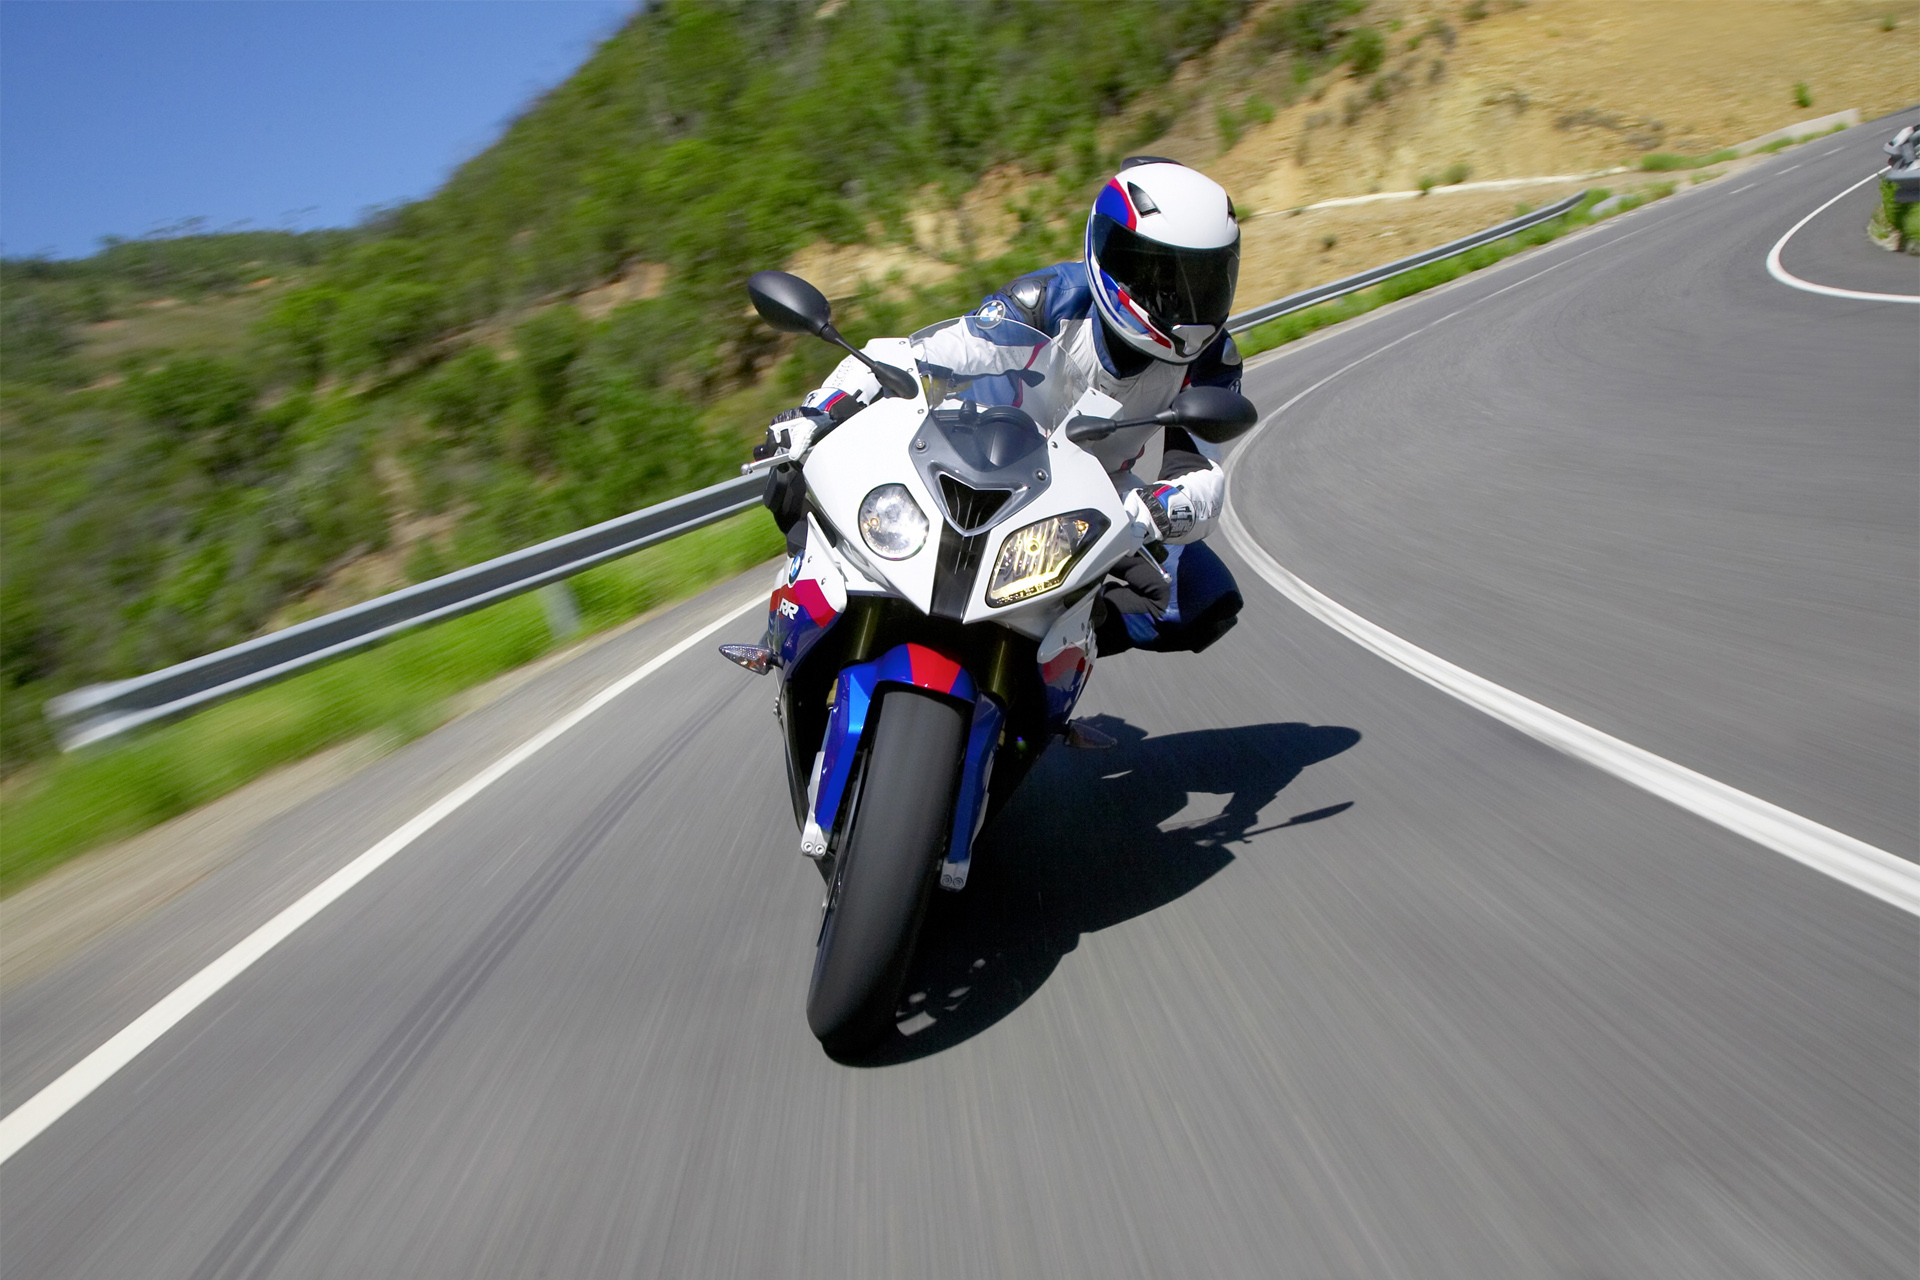 BMW S1000RR photos - PhotoGallery with 52 pics| CarsBase.com